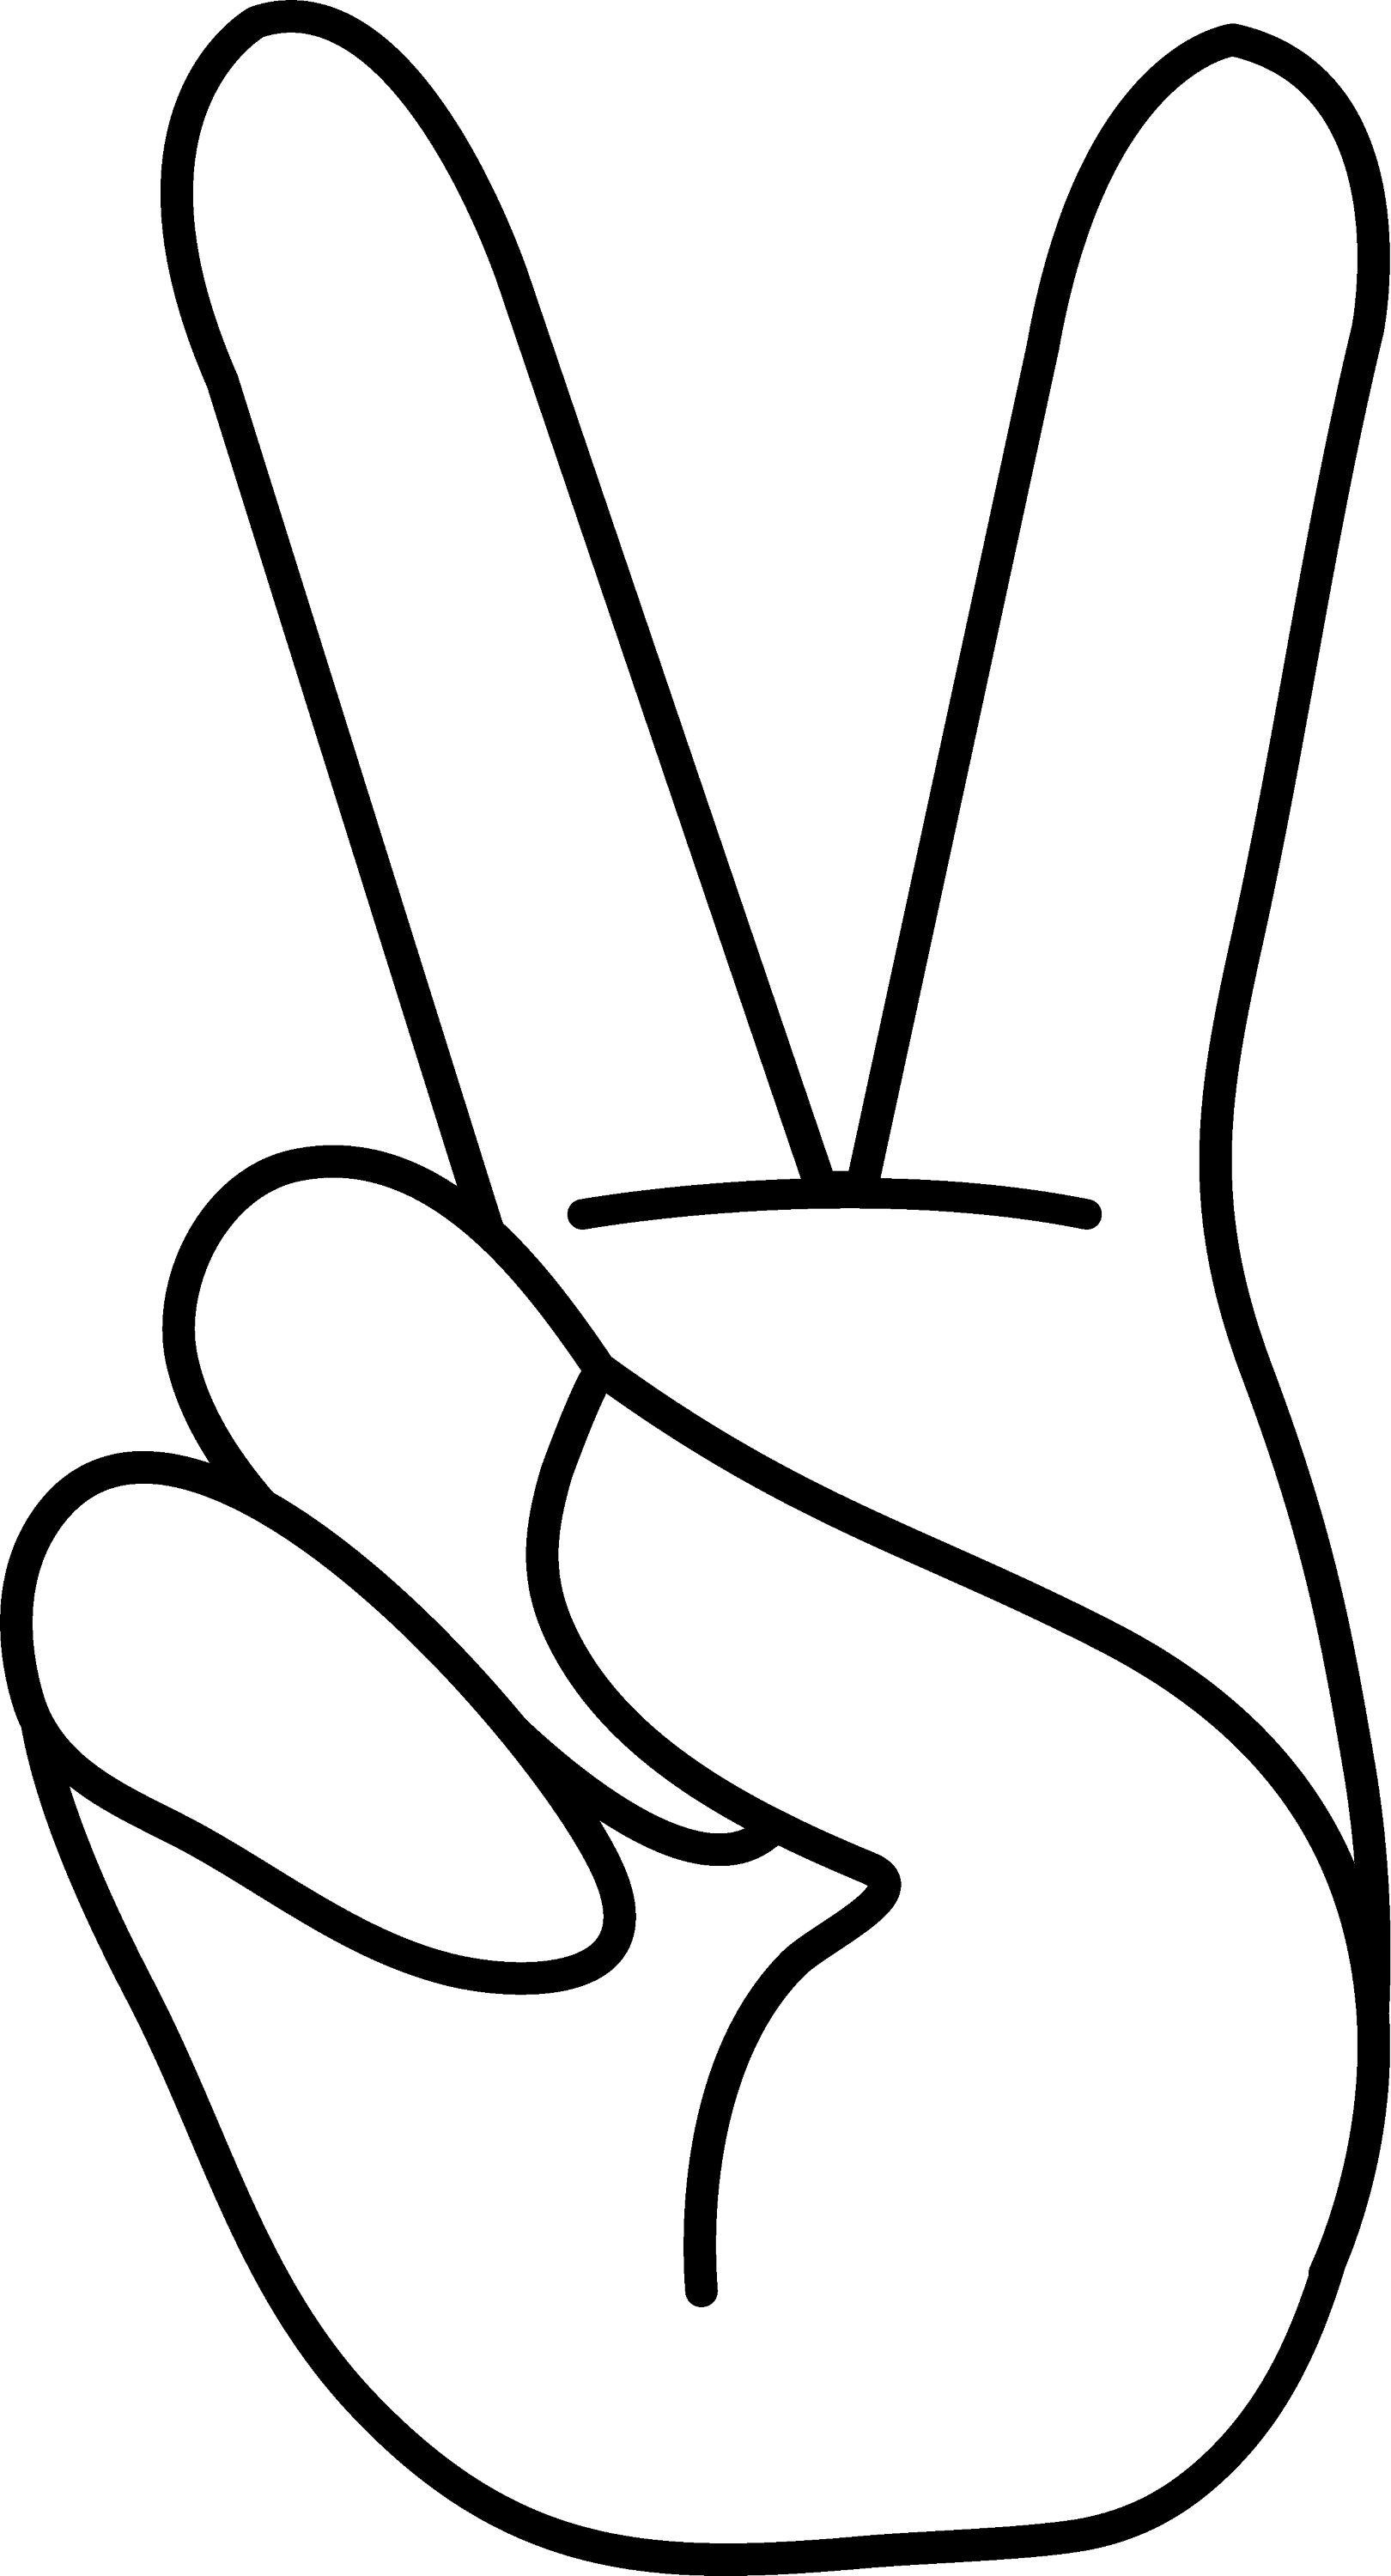 Peace Hand Sign Coloring Page - Free Clip Art